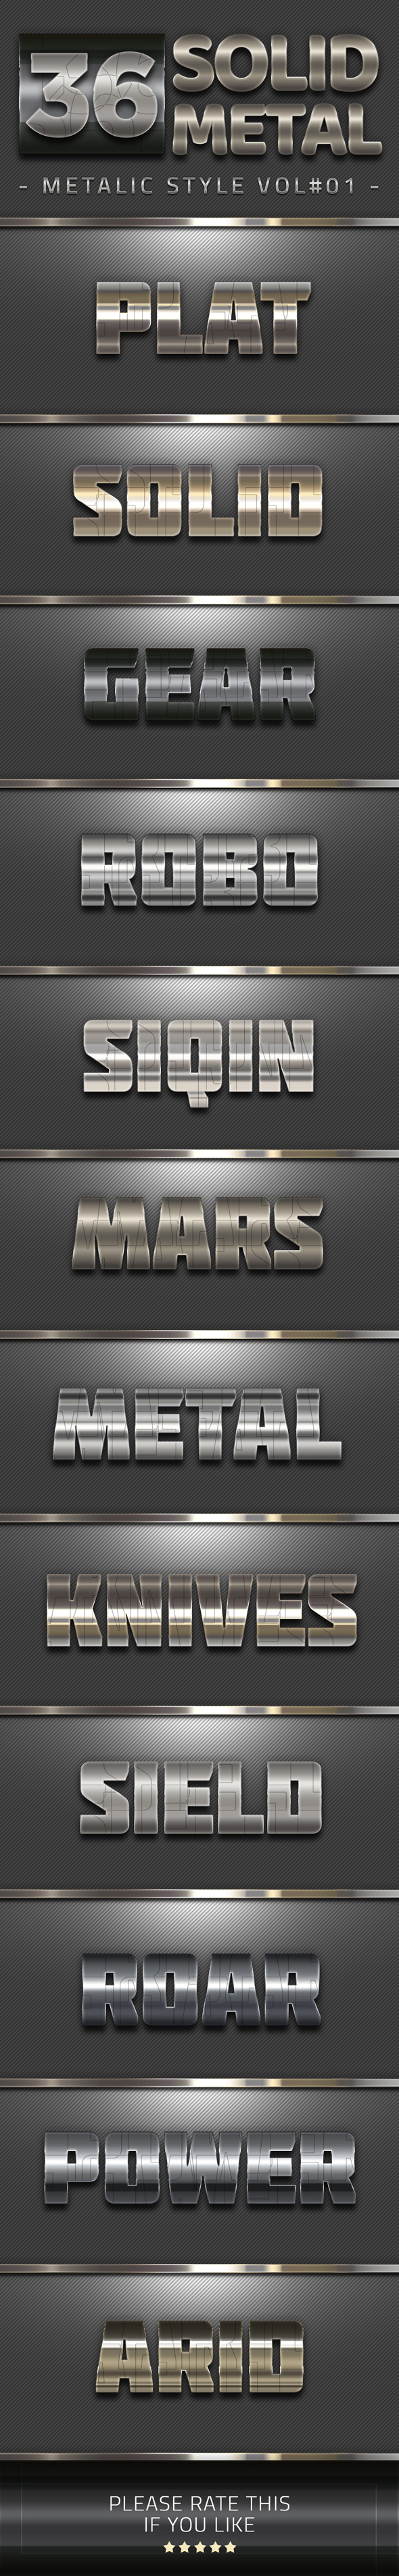 36 Solid Metal Text Effect V01